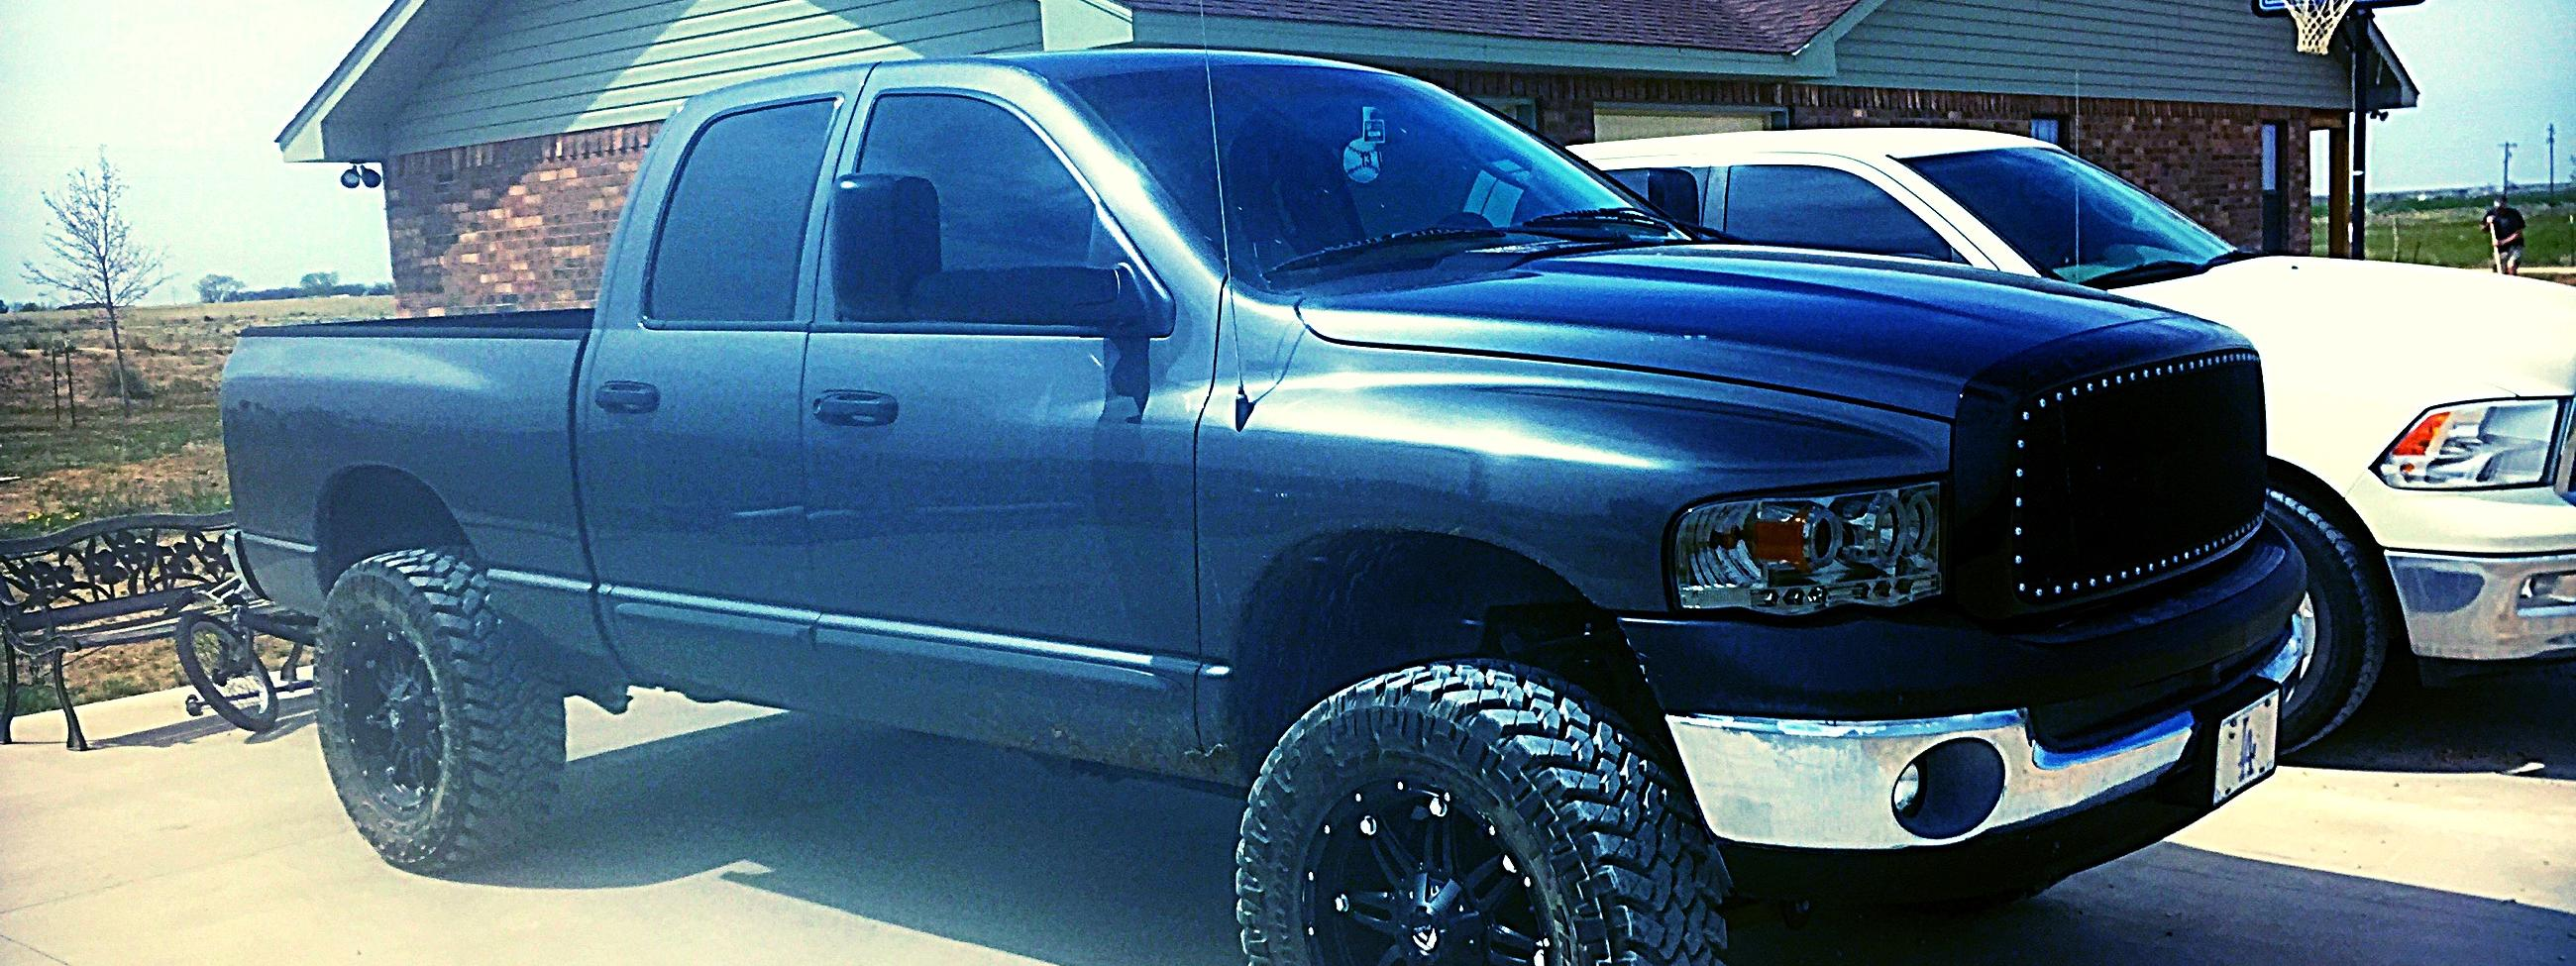 Karson Bartley 2002 Dodge Ram 1500 Quad CabSLT Specs, Photos